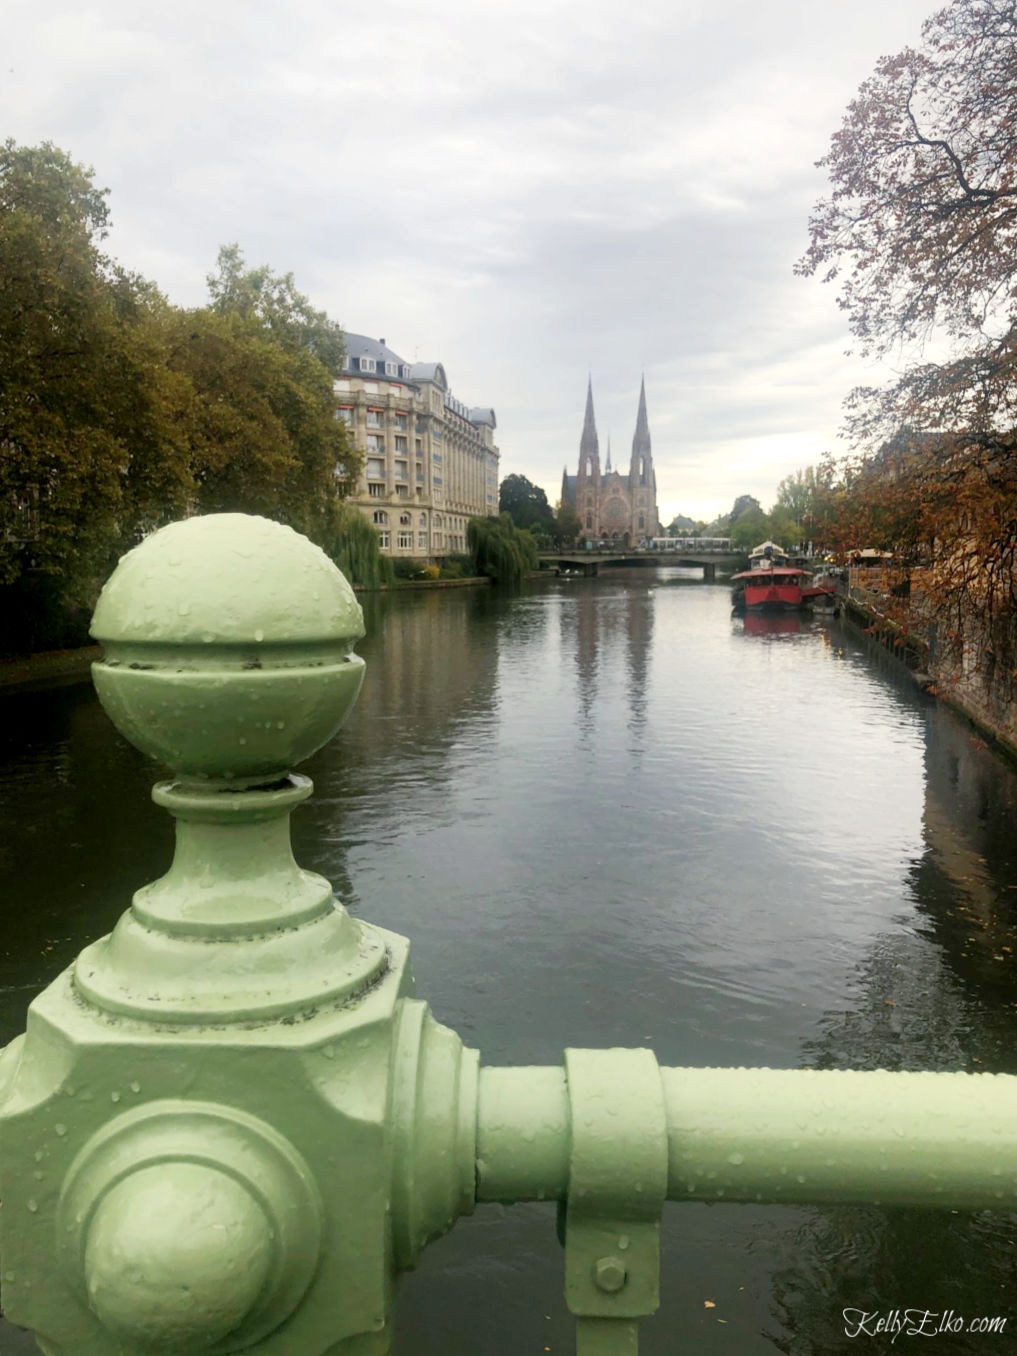 Strasbourg Cathedral from a bridge across the canal kellyelko.com #strasbourg #strasbourgcathedral #cathederal #rivercruise #luxurytravel #france #exploreeurope #travelblog #travelblogger